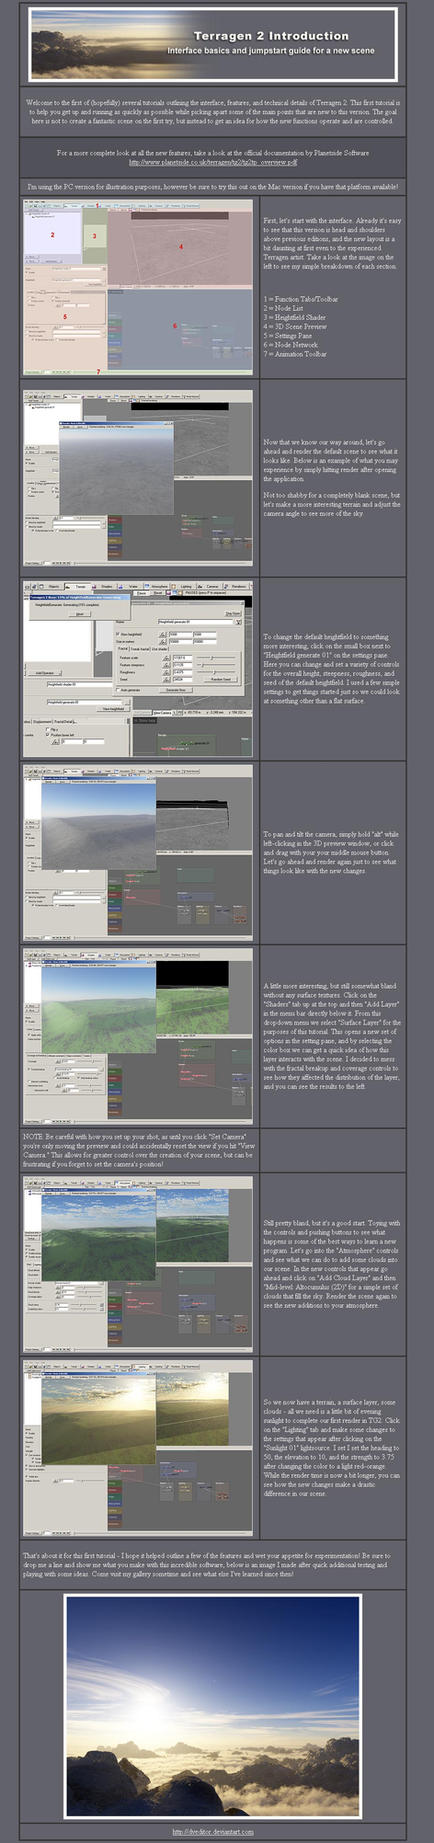 Terragen 2 Intro and Tutorial by DVeditor